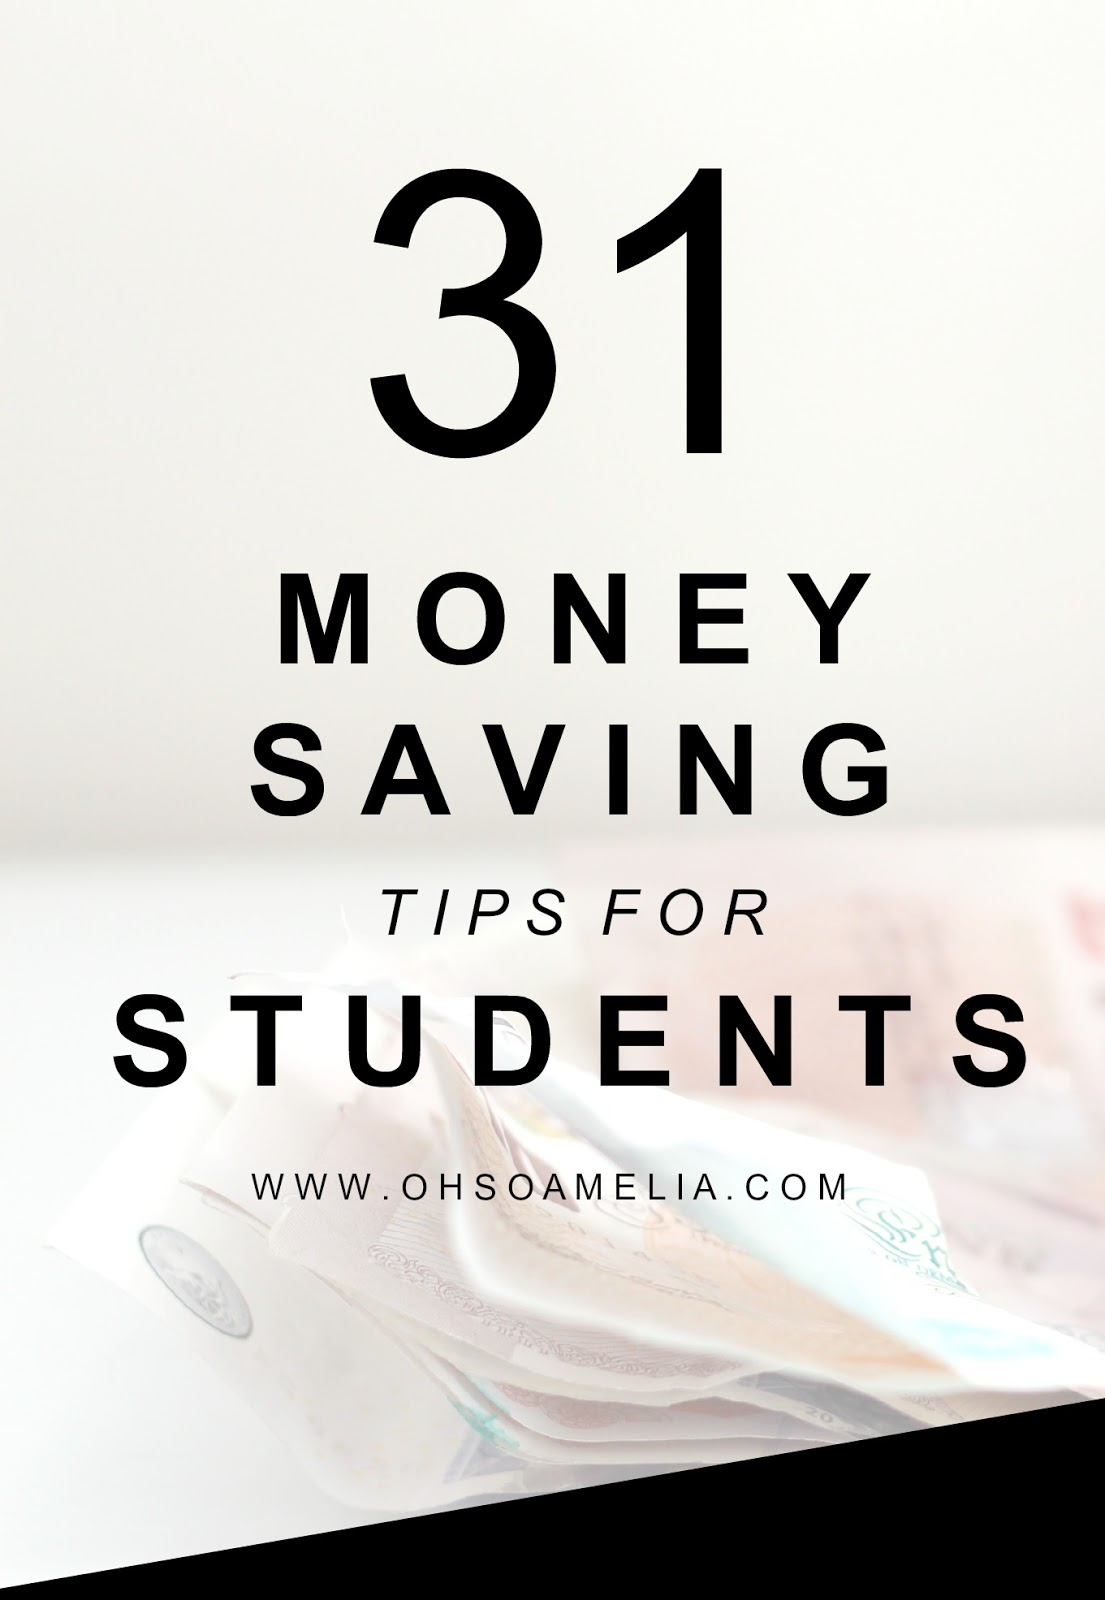 Starting college or Uni this year? Check out these 31 money saving tips for students which are bound to save you money!